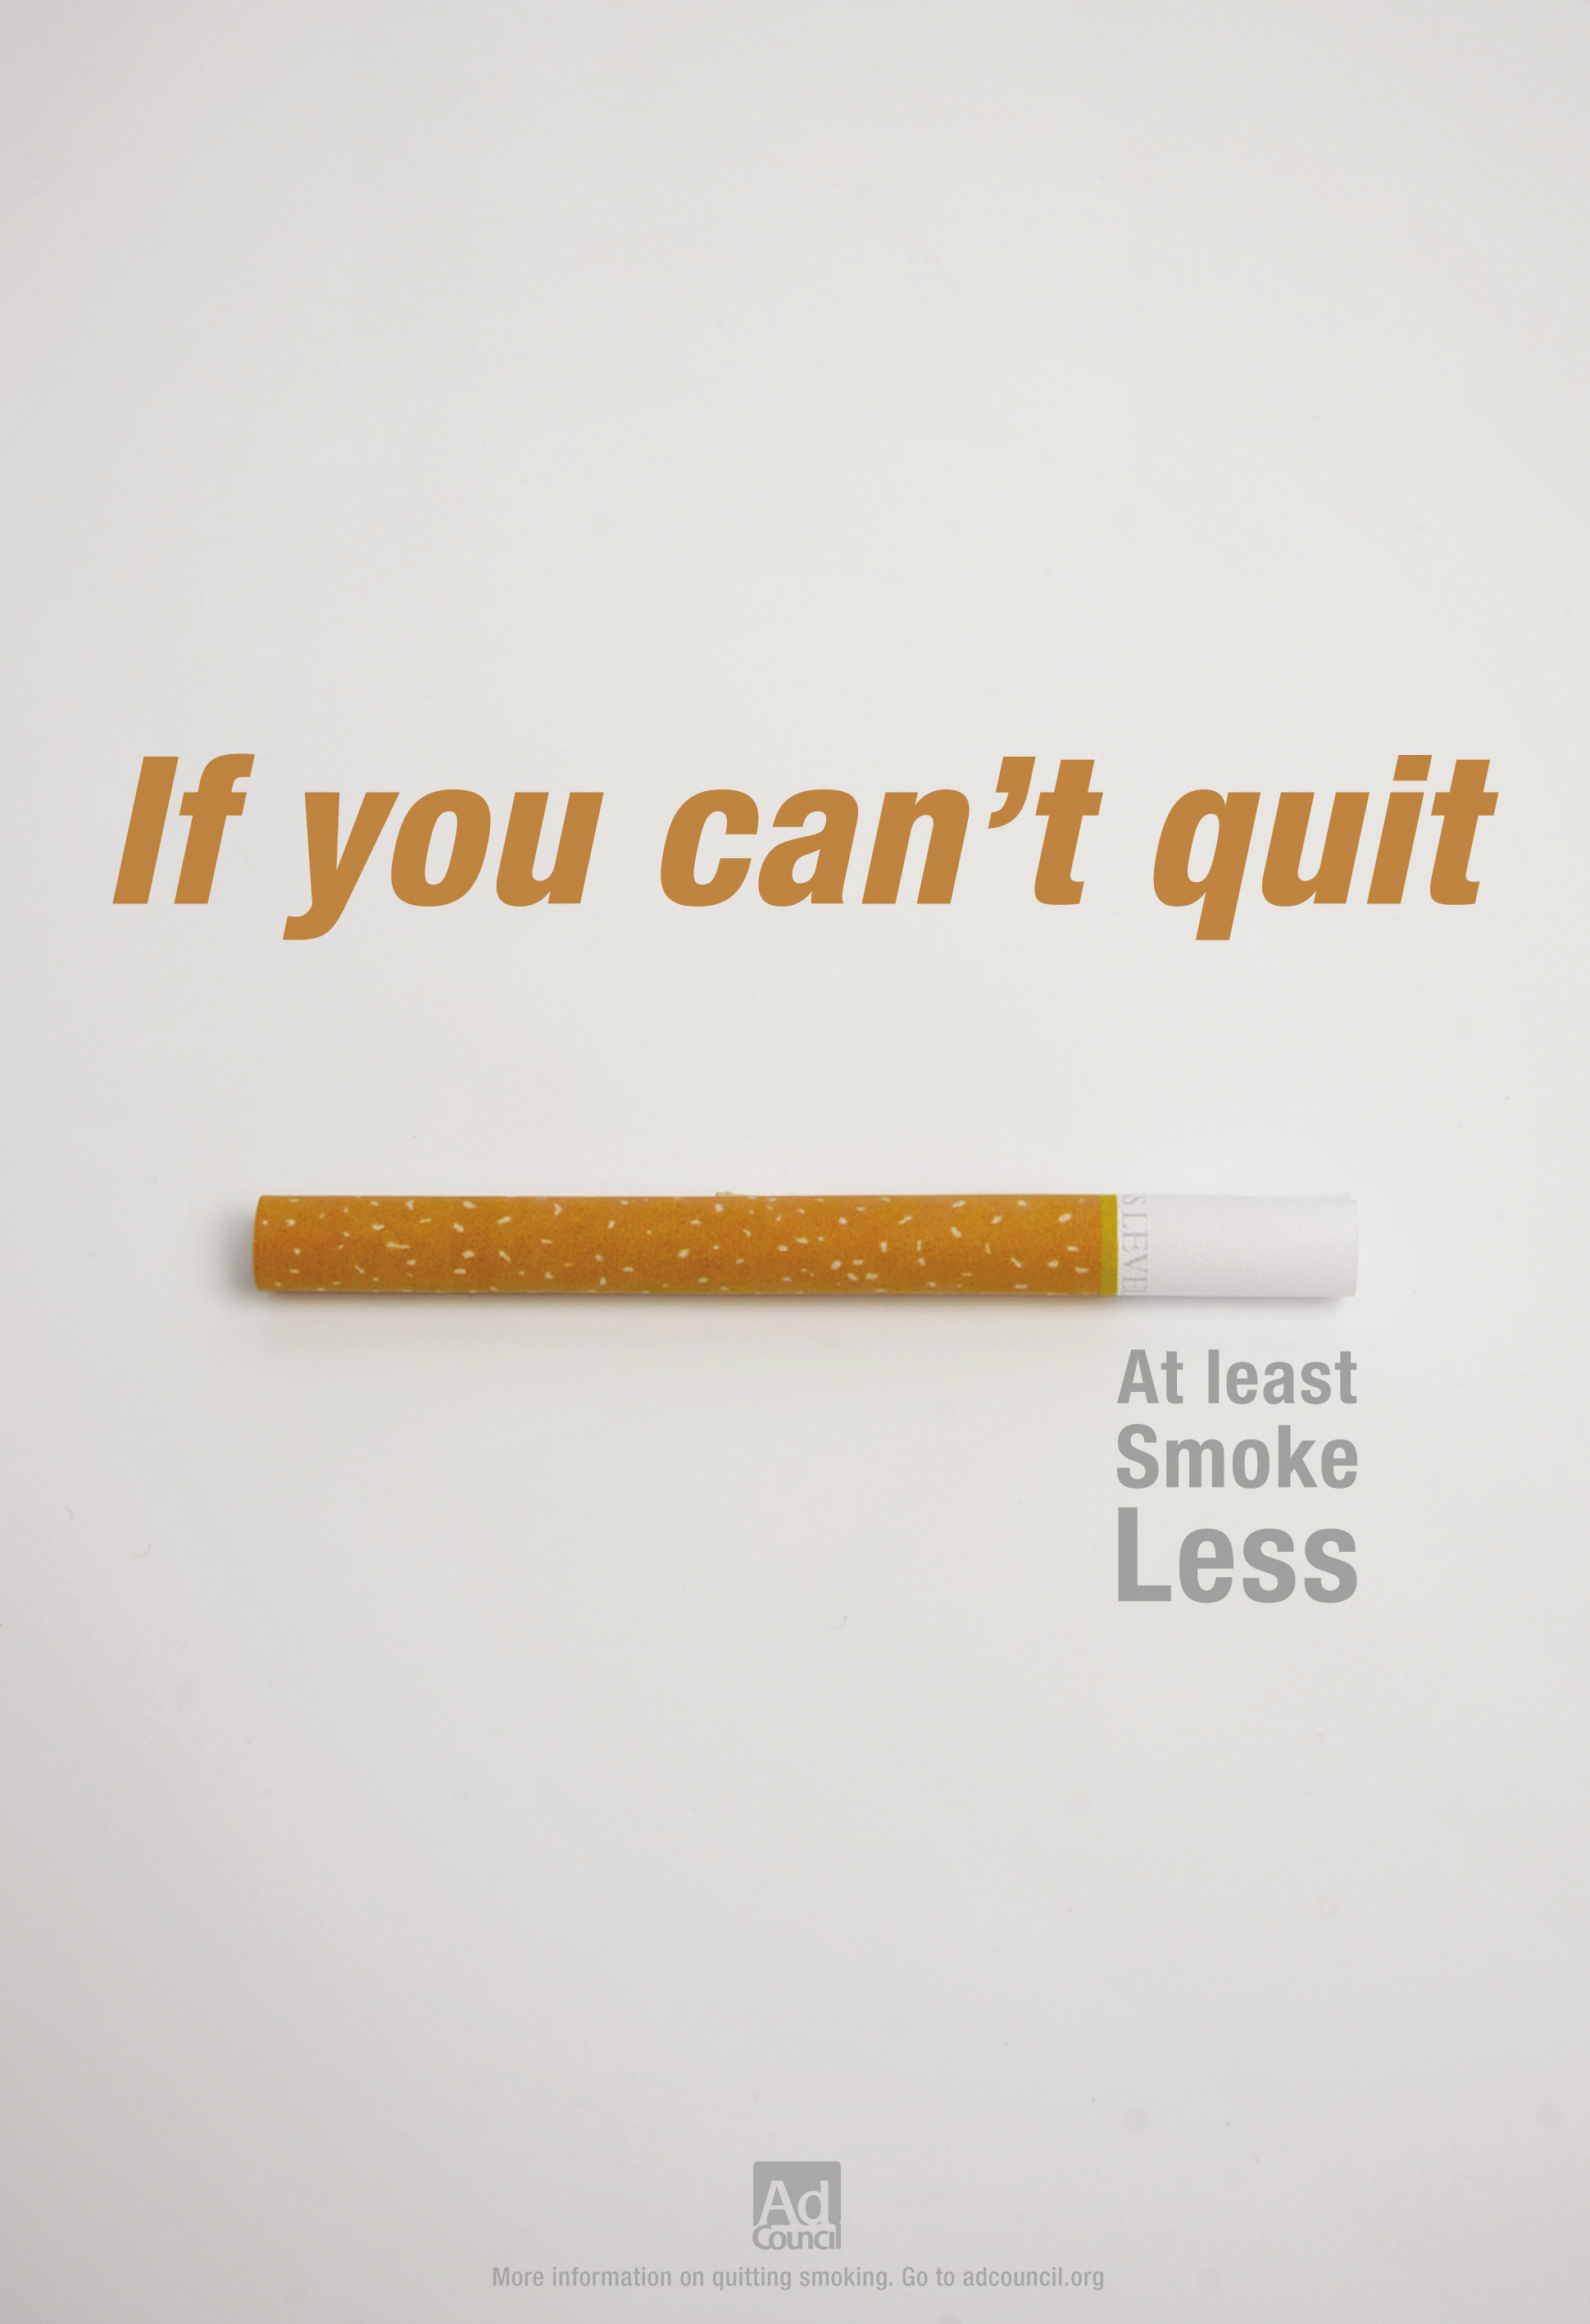 No smoking ads campaigns